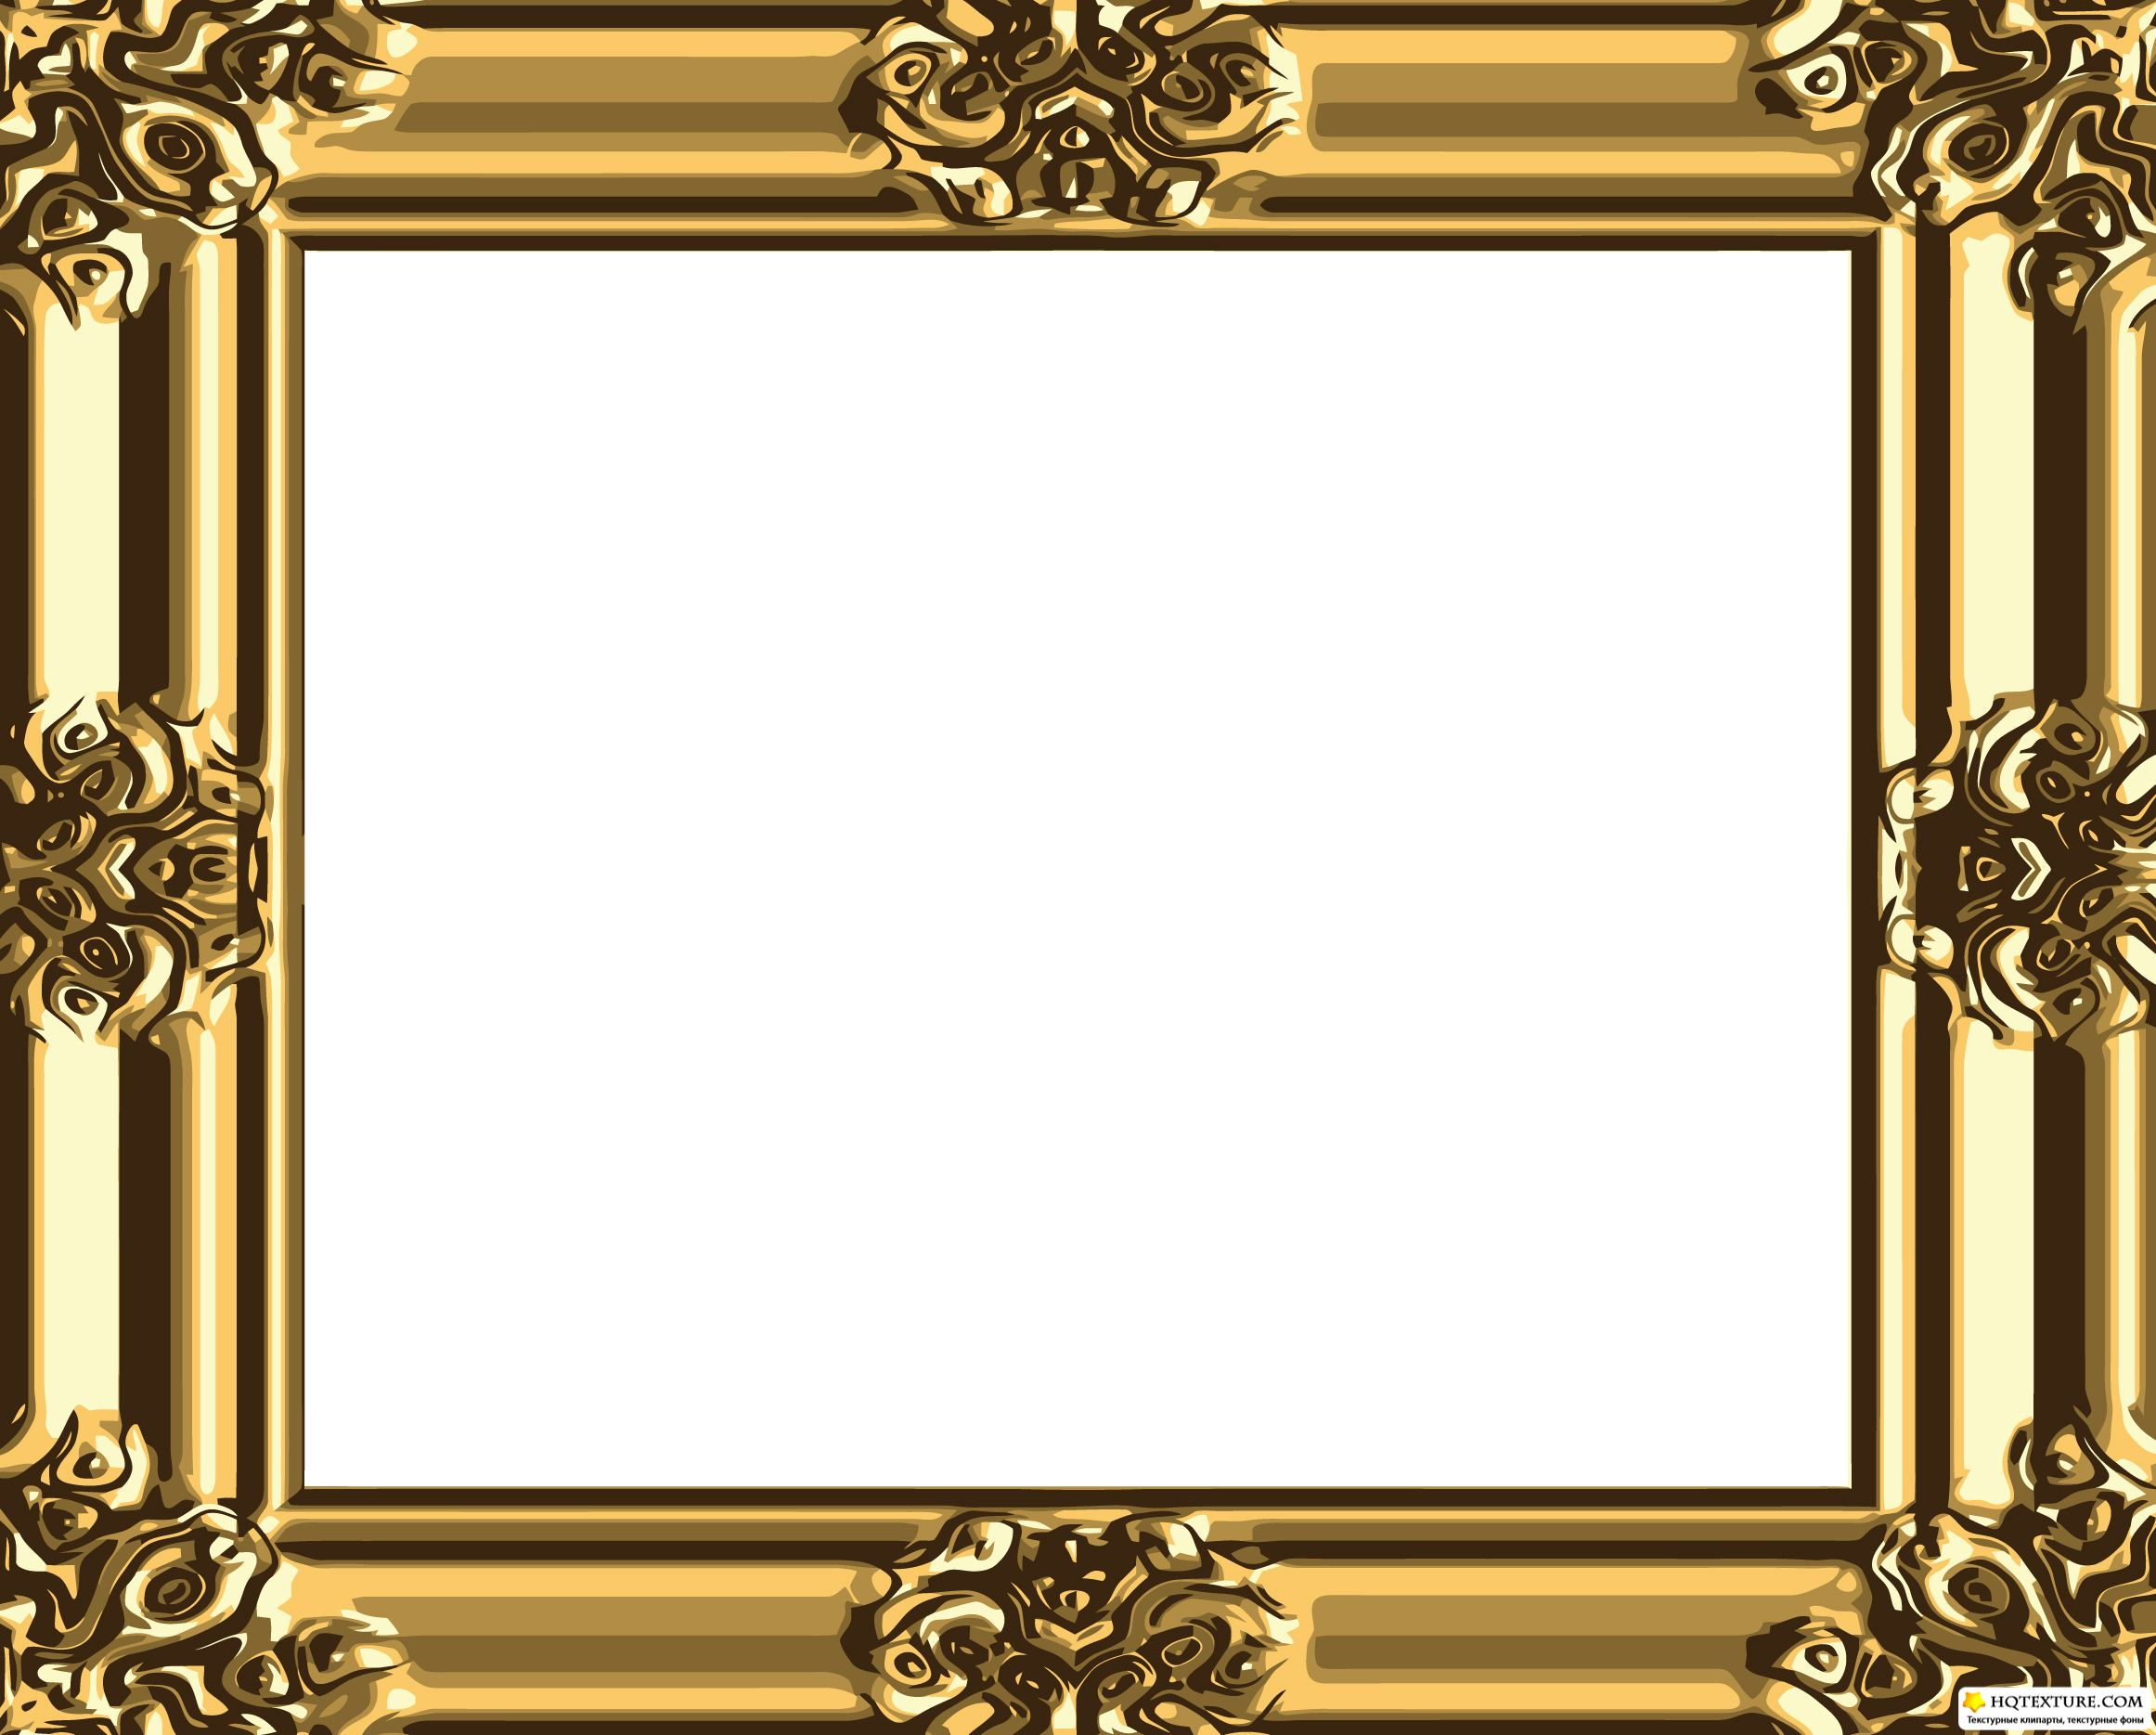 11 vintage frames psd images picture frame photoshop psd for Picture frame templates for photoshop